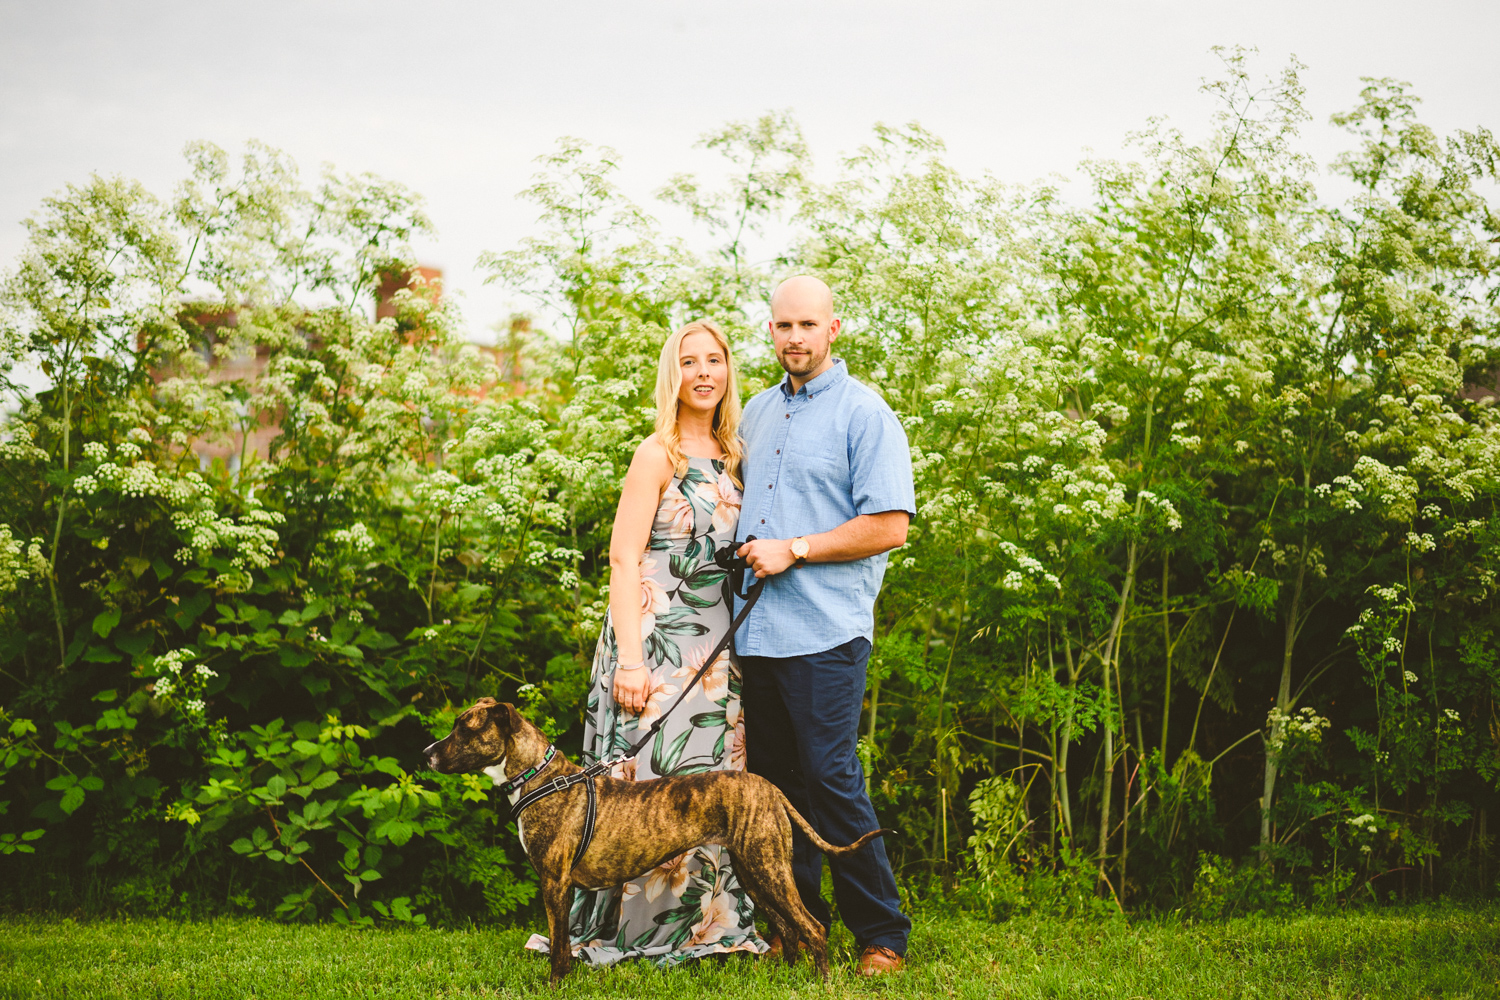 009 - a couple poses with their dog in richmond virginia.jpg